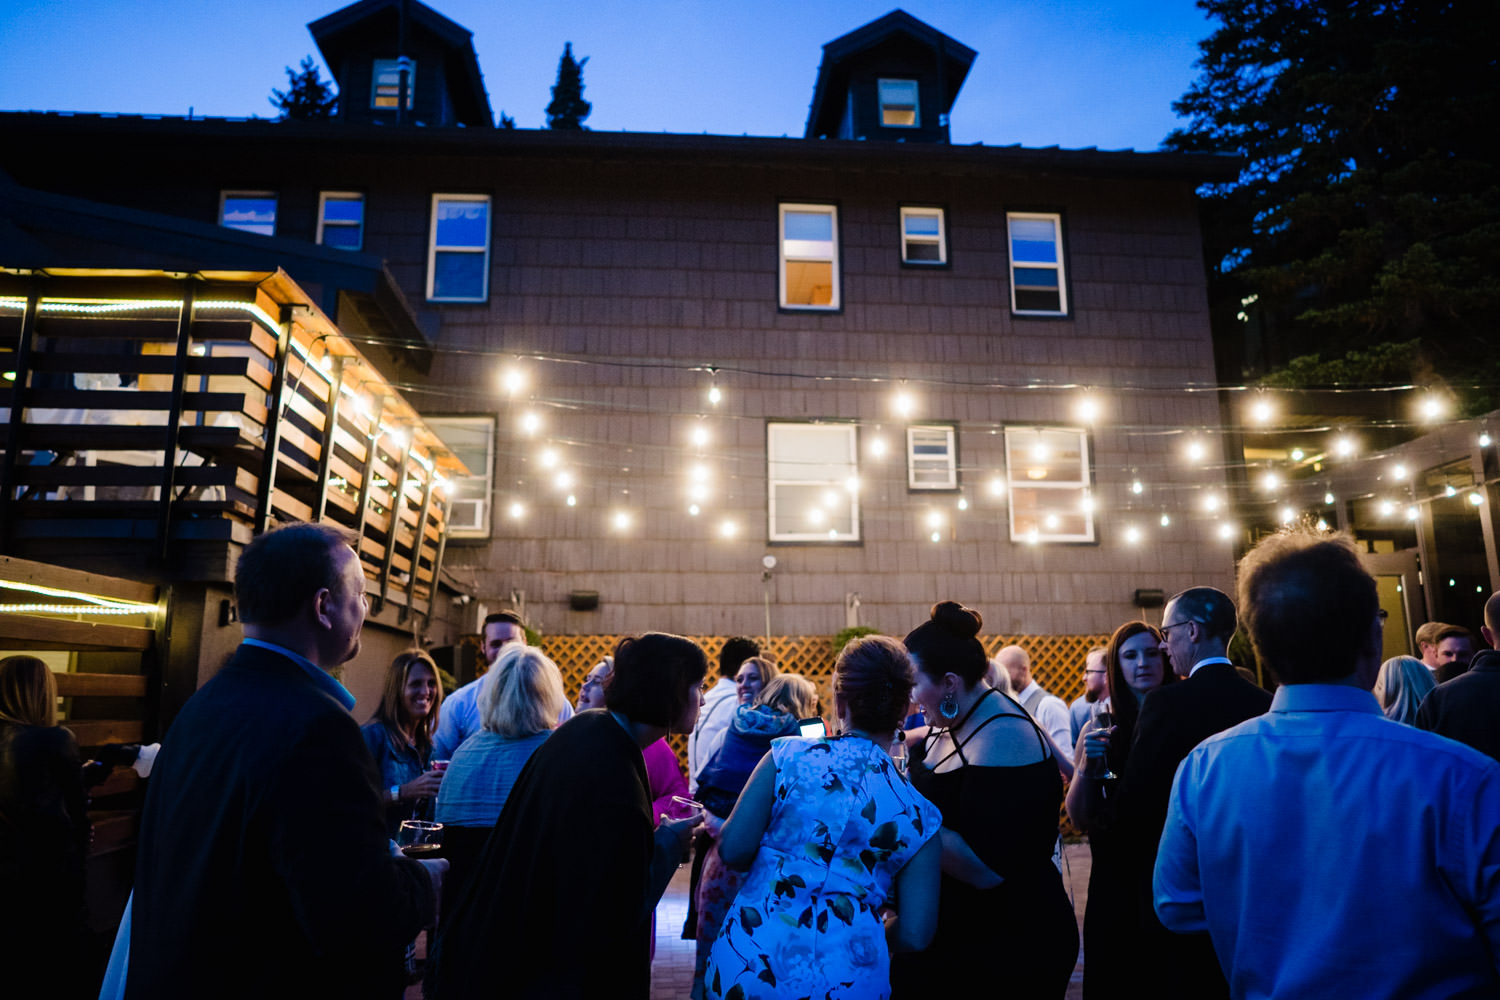 Alta Lodge wedding dance party during blue hour photo